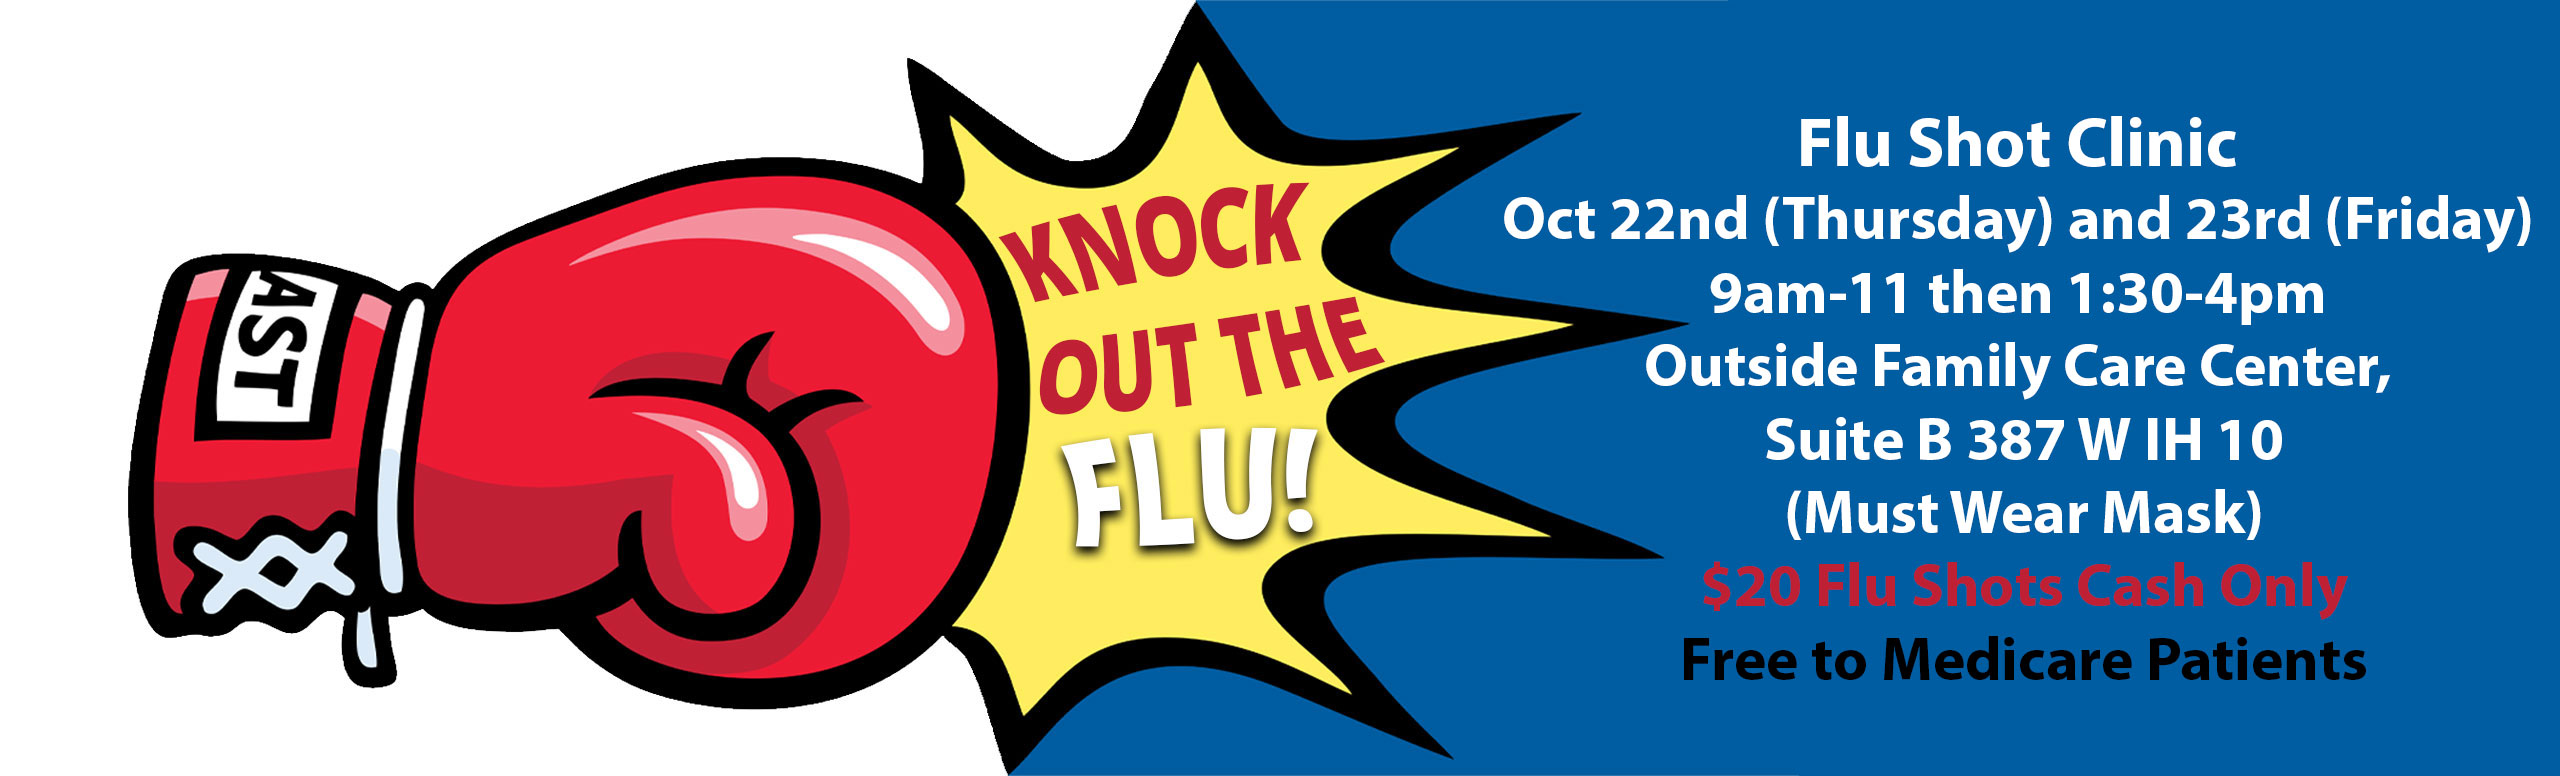 Pictured is a boxing glove with the animation of it knocking out the flu.   Flu Shot Clinic September 26, 2020 (Saturday) 10 am - 2 pm PCMH Walk-in Clinic (outside in covered parking area) Must Wear Mask $20 Flu Shots Cash Only Free to Medicare Patients with Medicare card 10 am - 2 pm